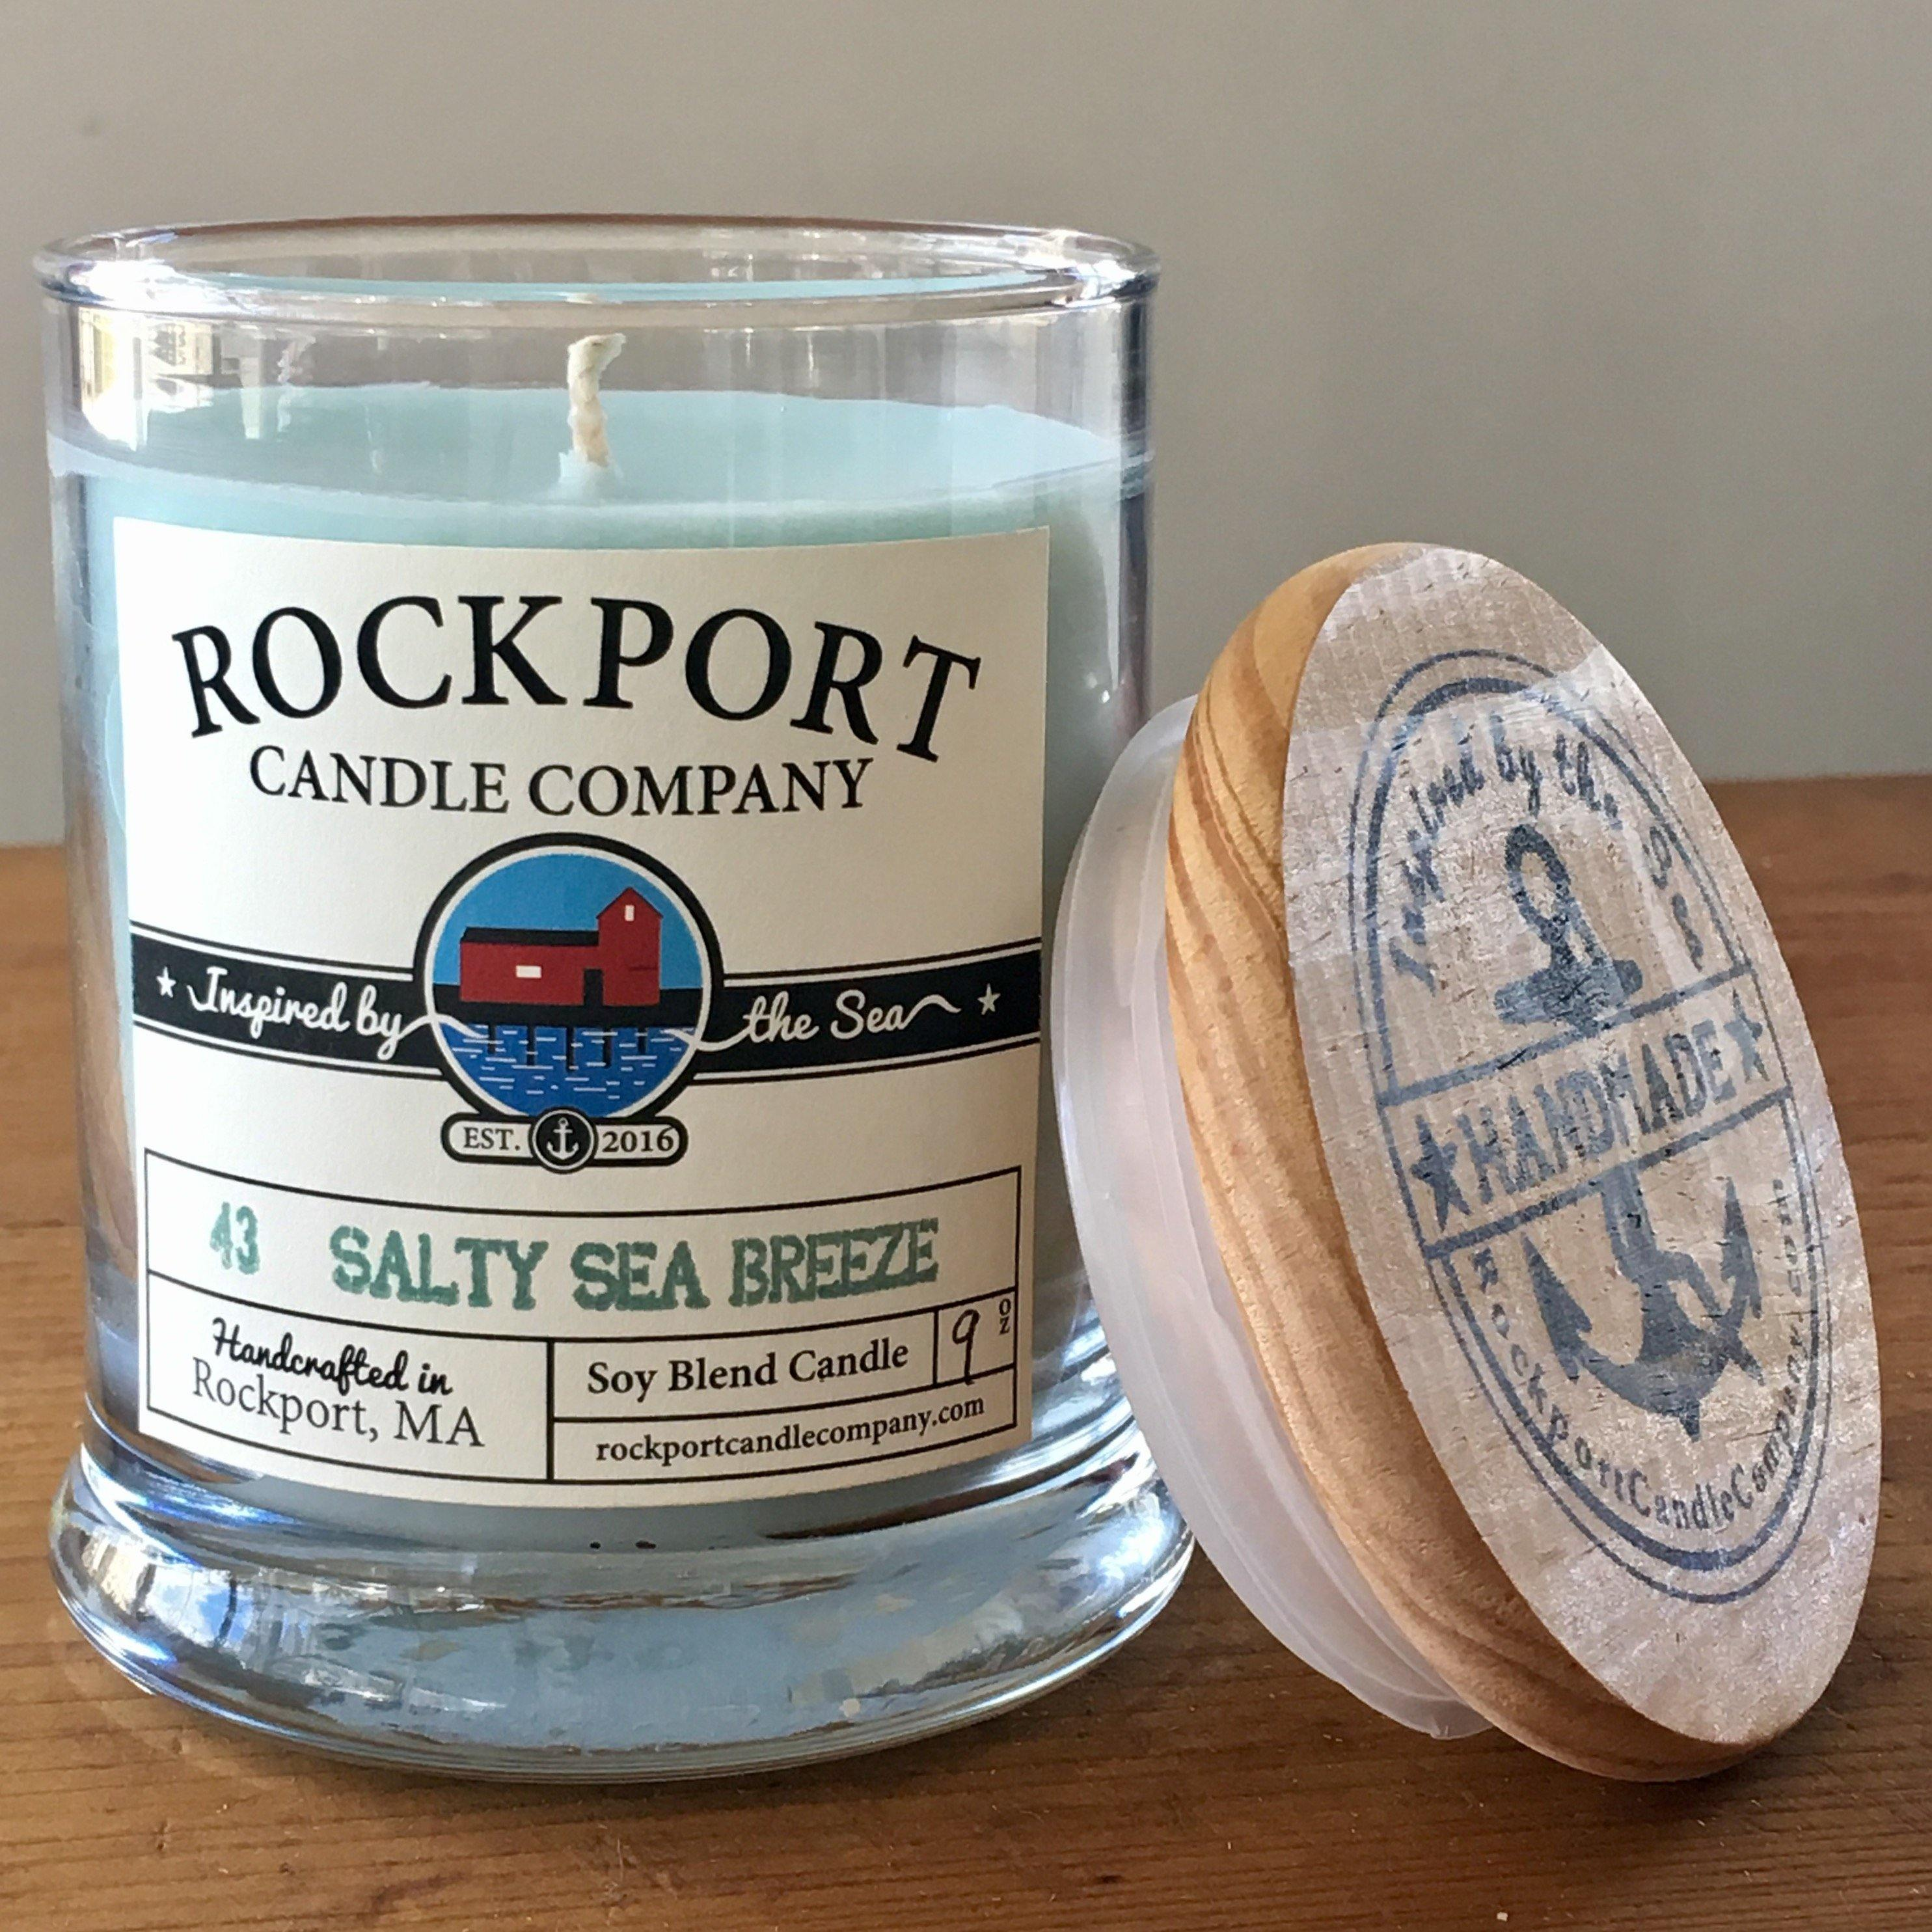 43 Salty Sea Breeze Candle Rockport Candle Company